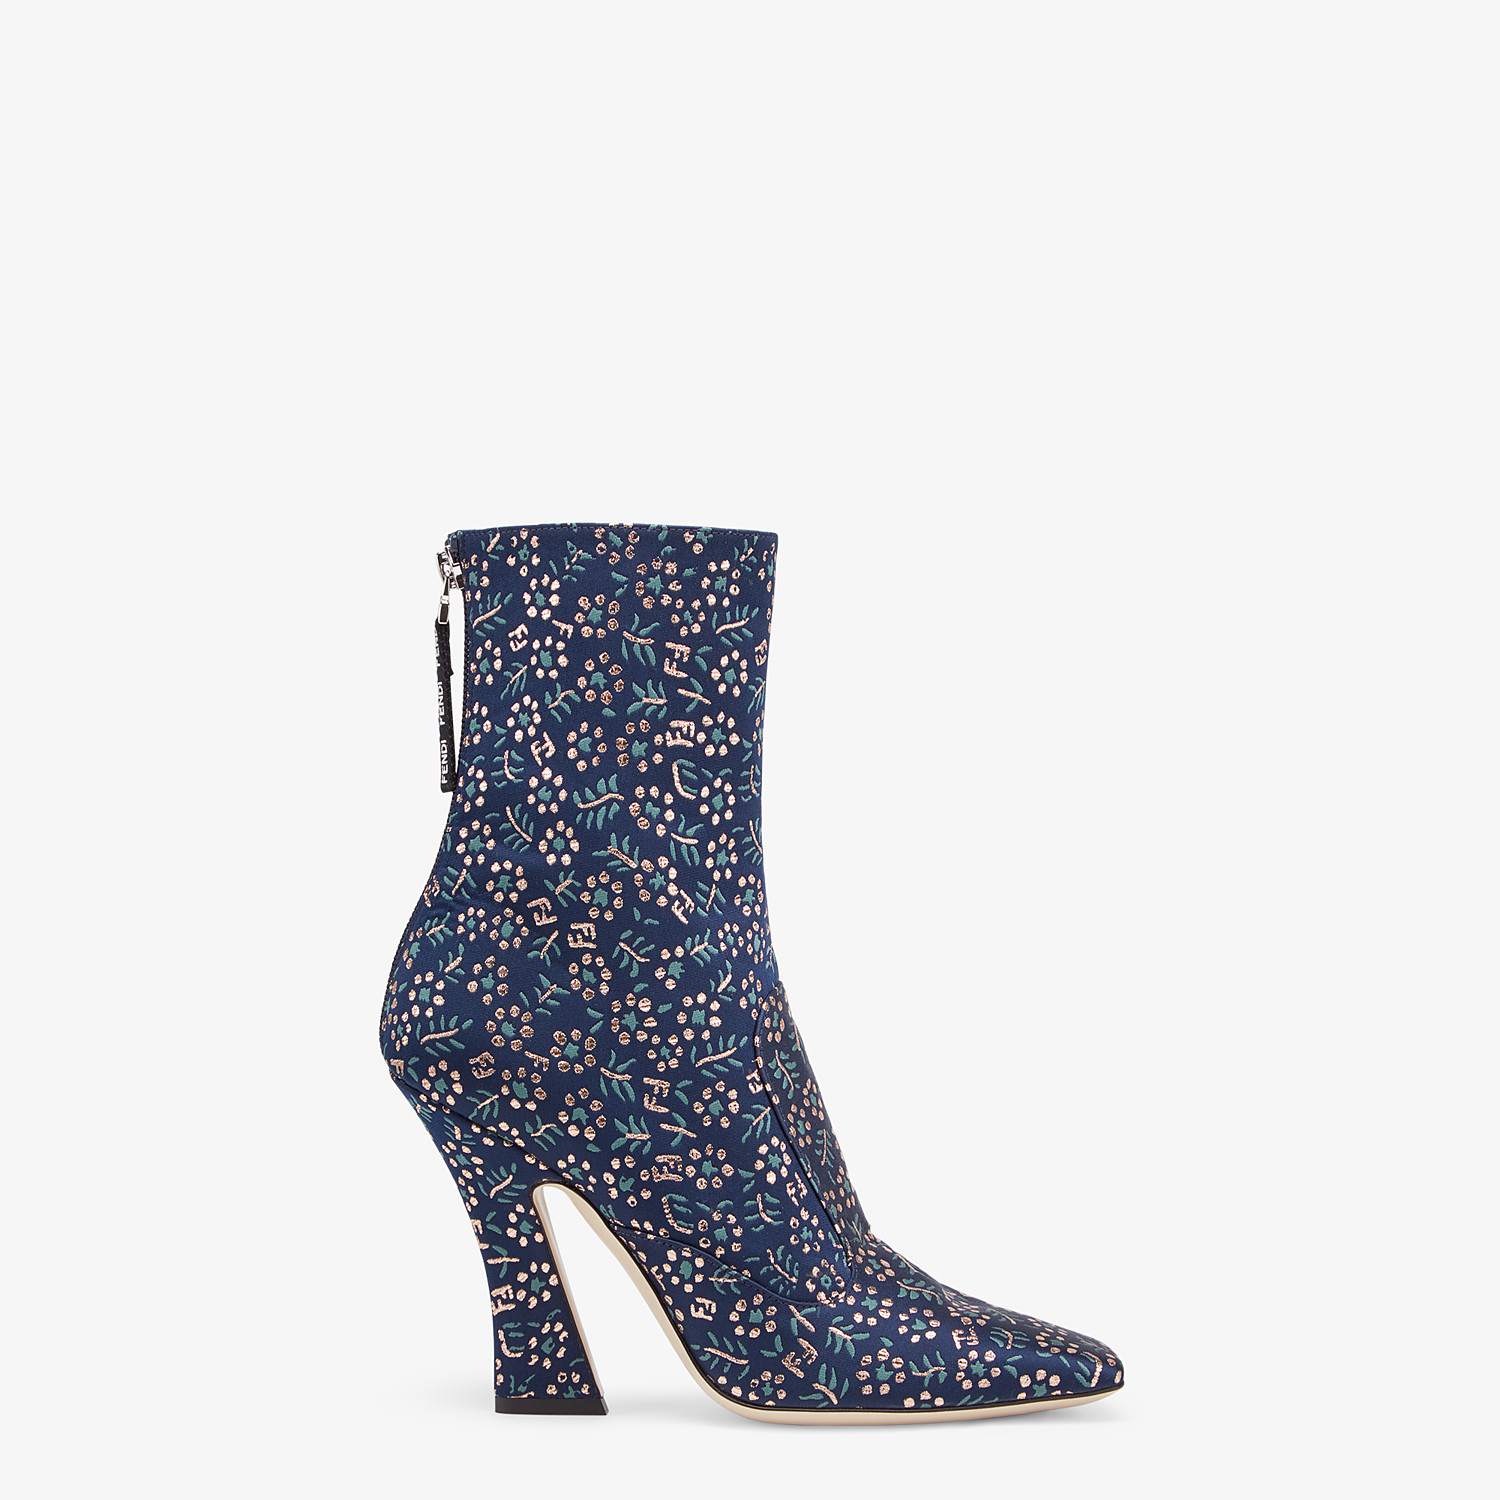 FENDI ANKLE BOOTS - Multicolor fabric booties - view 1 detail